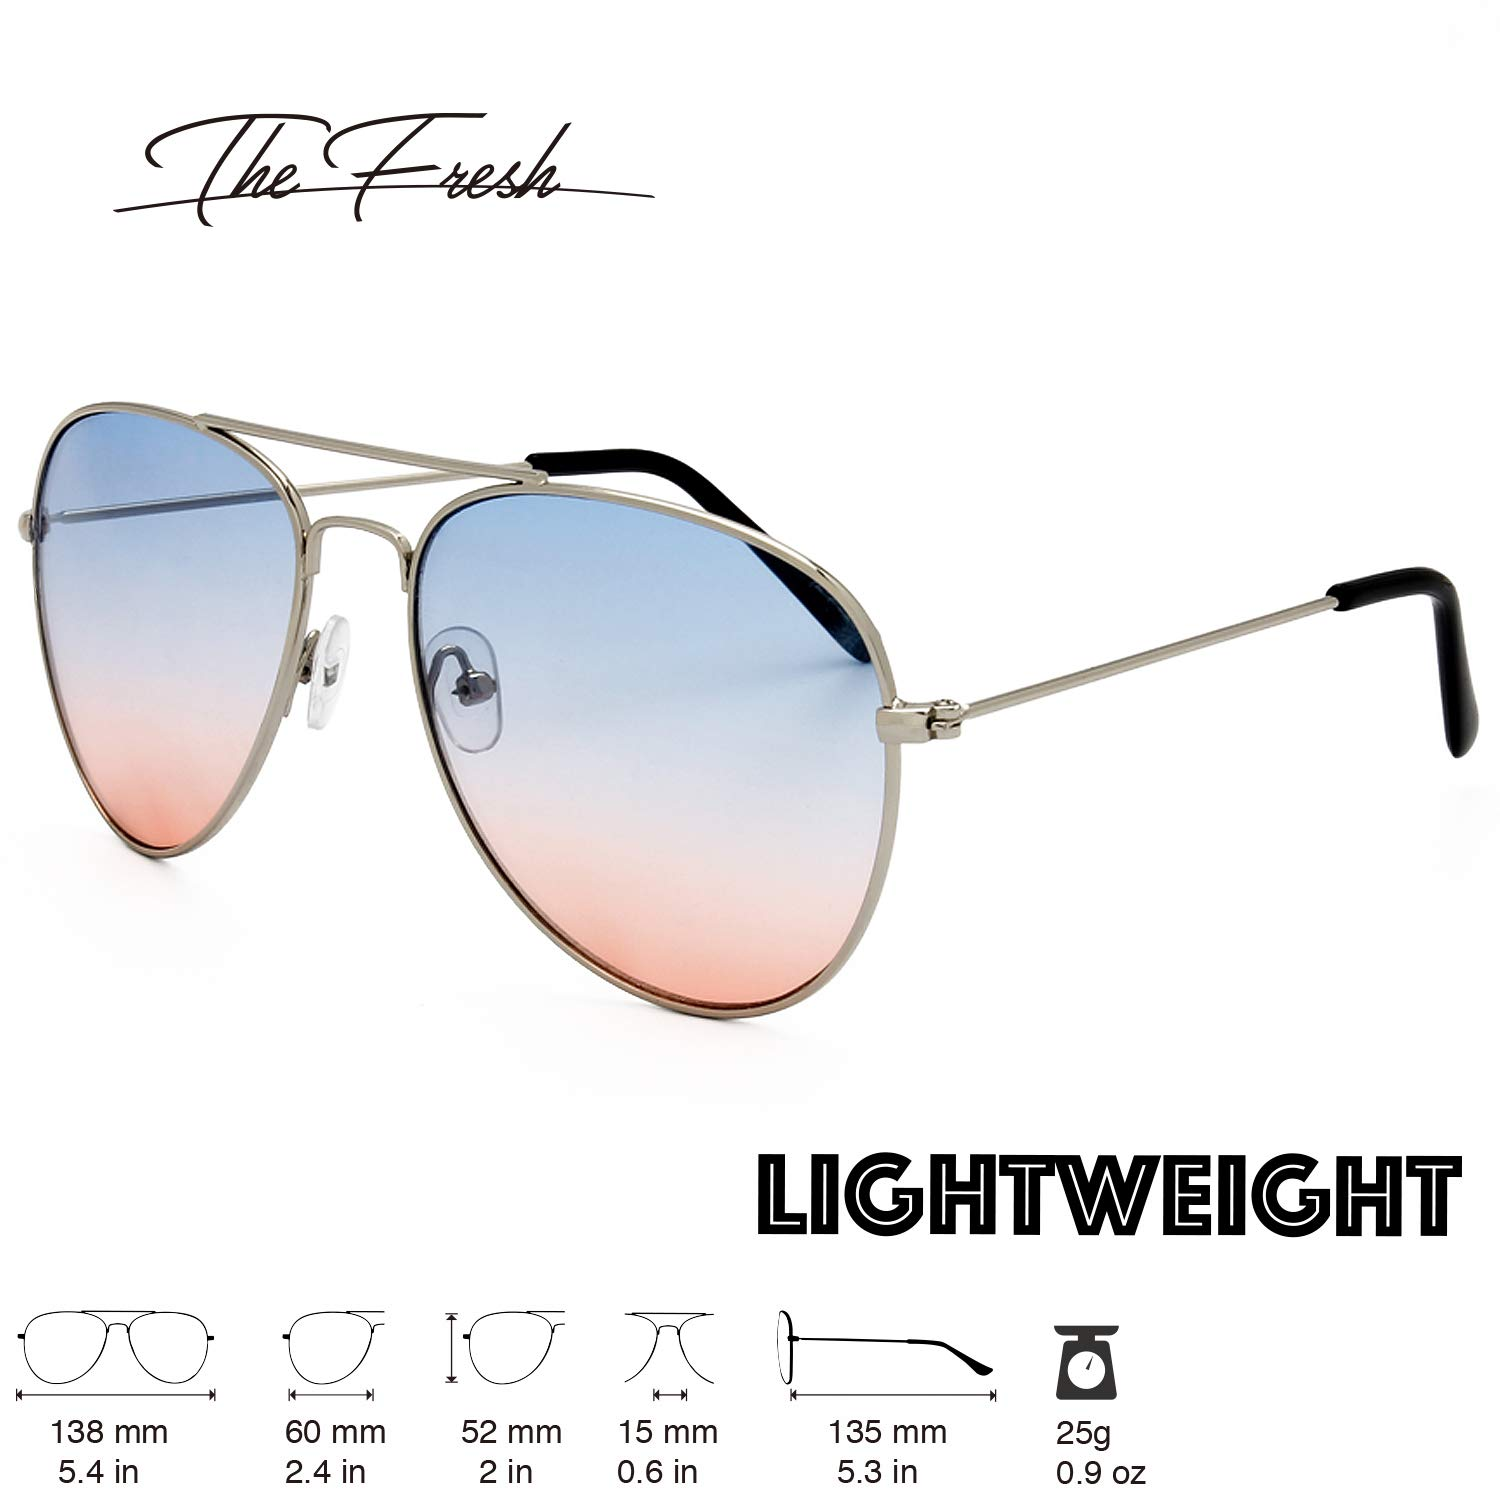 c2379fbb1e67e Amazon.com  The Fresh Classic Large Metal Frame Oceanic Color Lens Aviator  Sunglasses with Gift Box (Silver